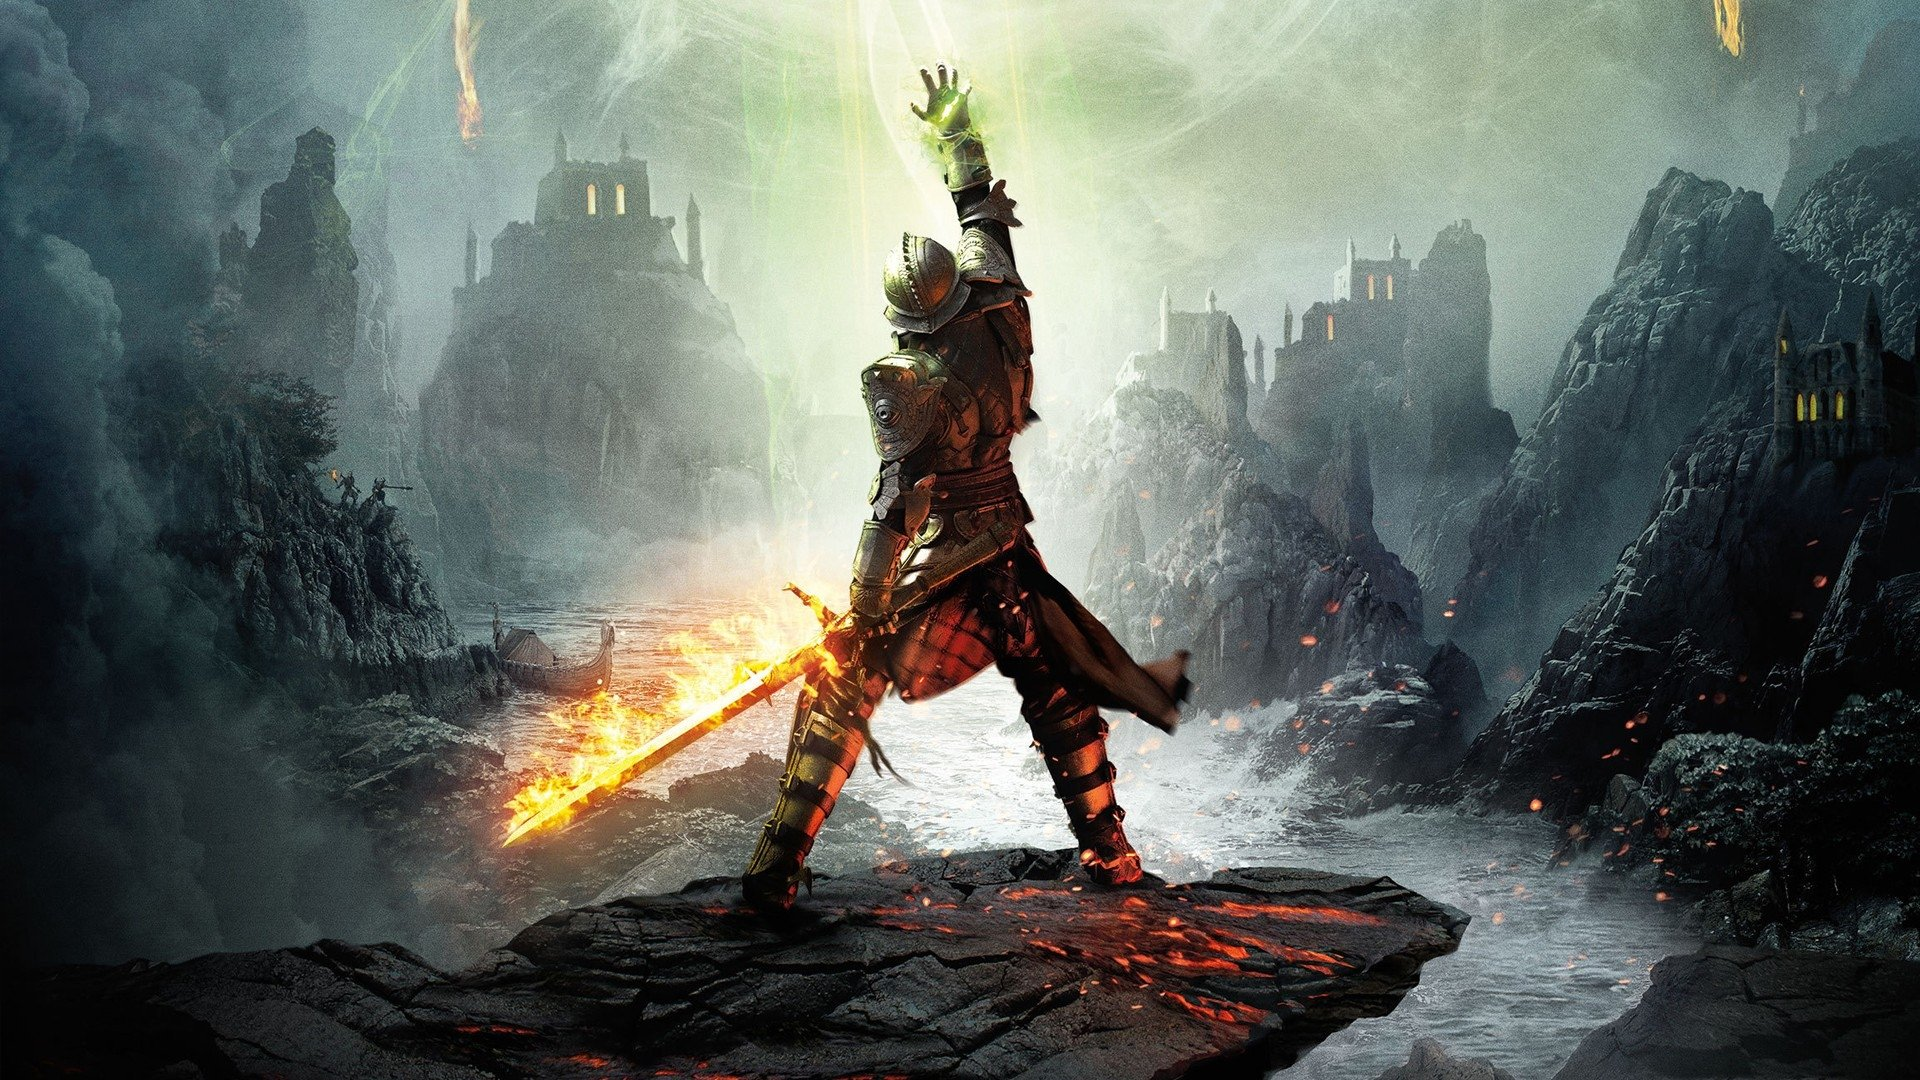 193 Dragon Age Inquisition Hd Wallpapers Background Images